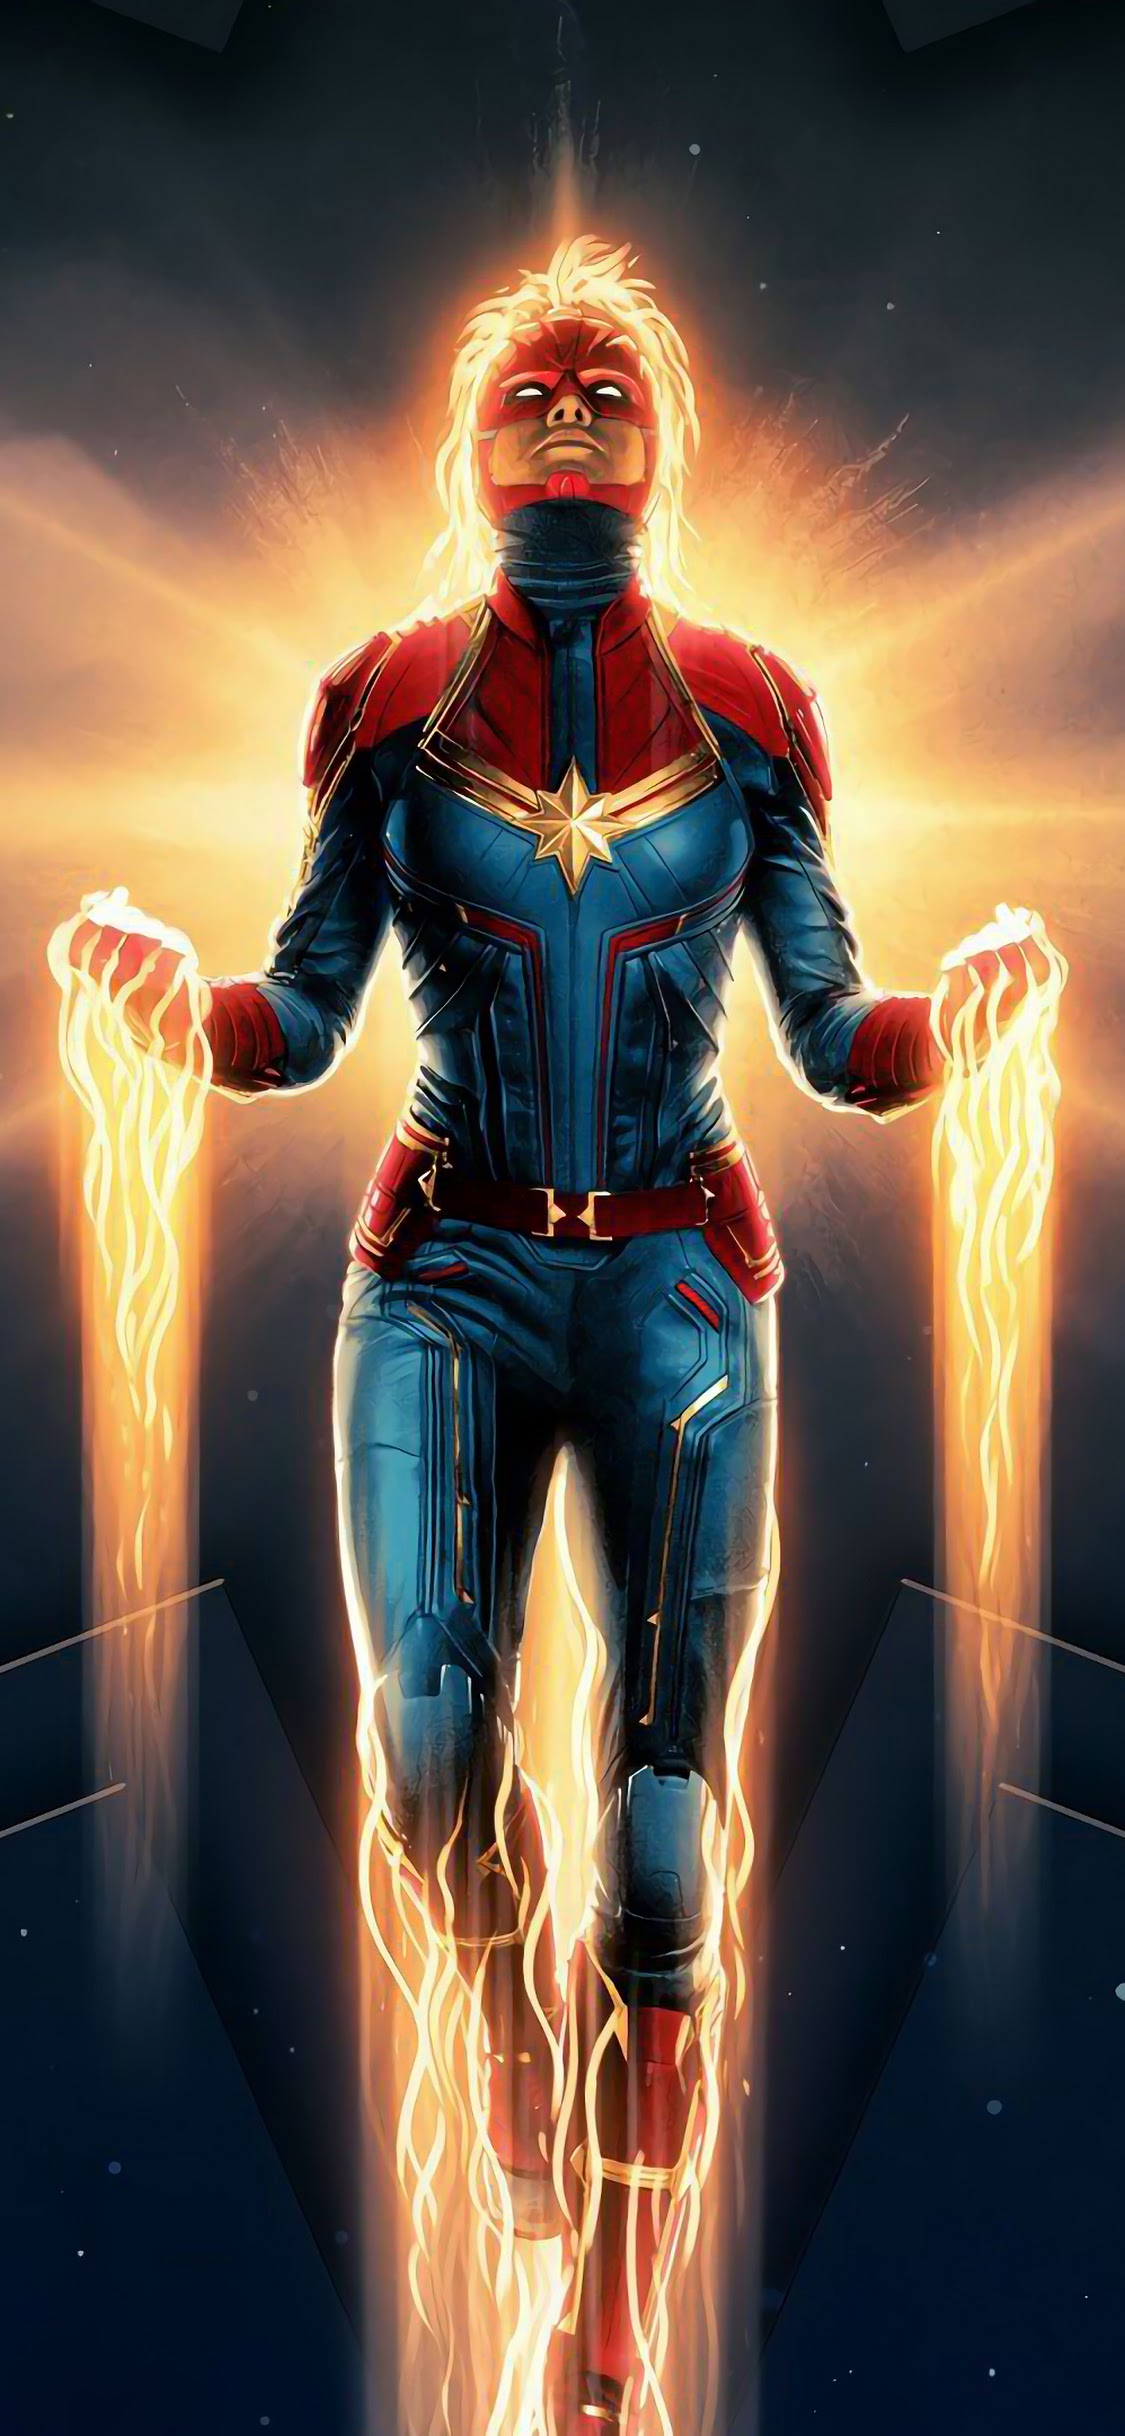 34 Marvel Iphone Wallpaperfree Download Hd4k Liberty - Captain Marvel Wallpaper Iphone X , HD Wallpaper & Backgrounds